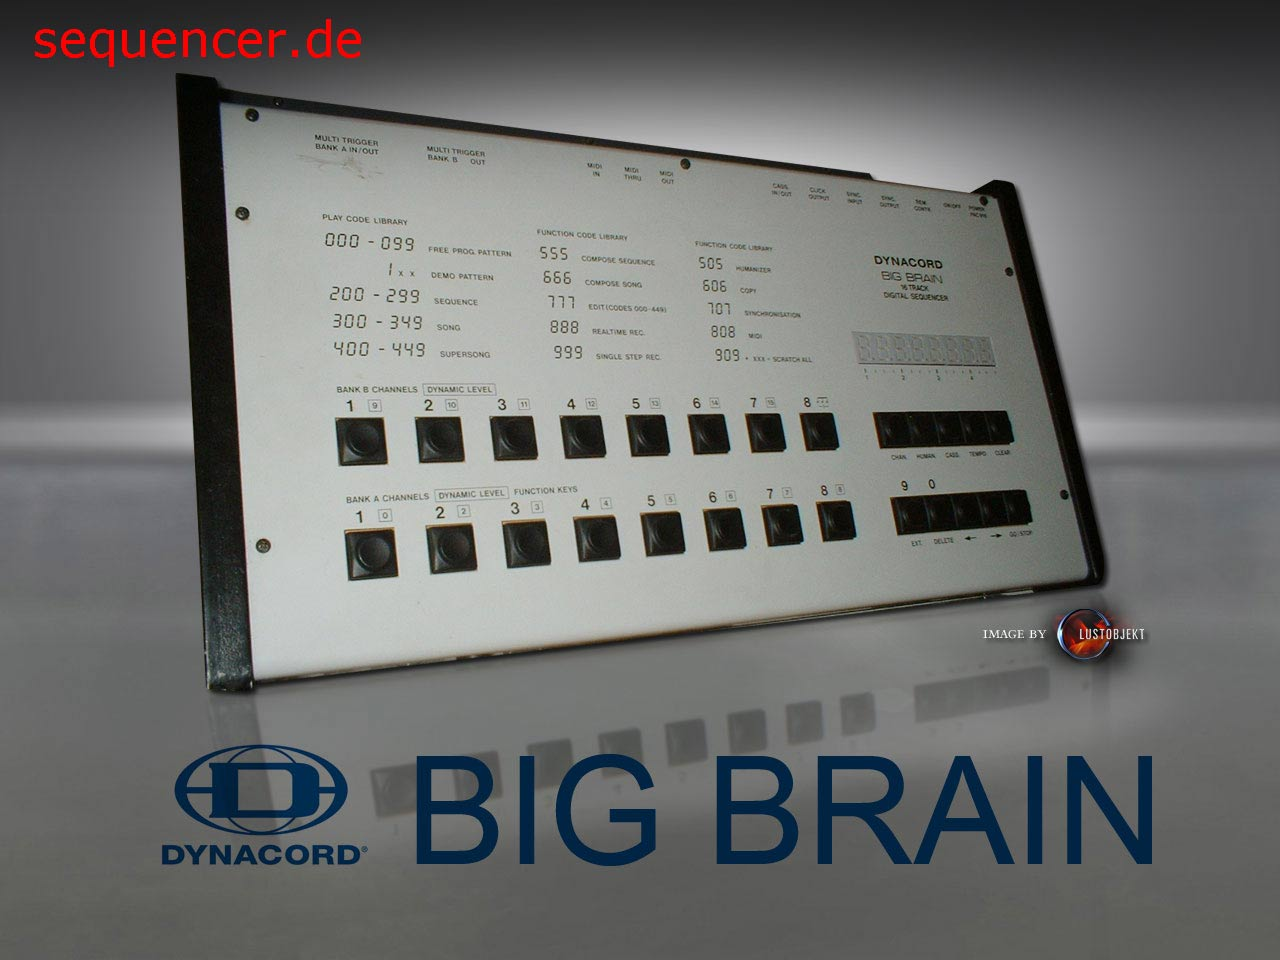 Dynacord Big Brain Dynacord Big Brain synthesizer